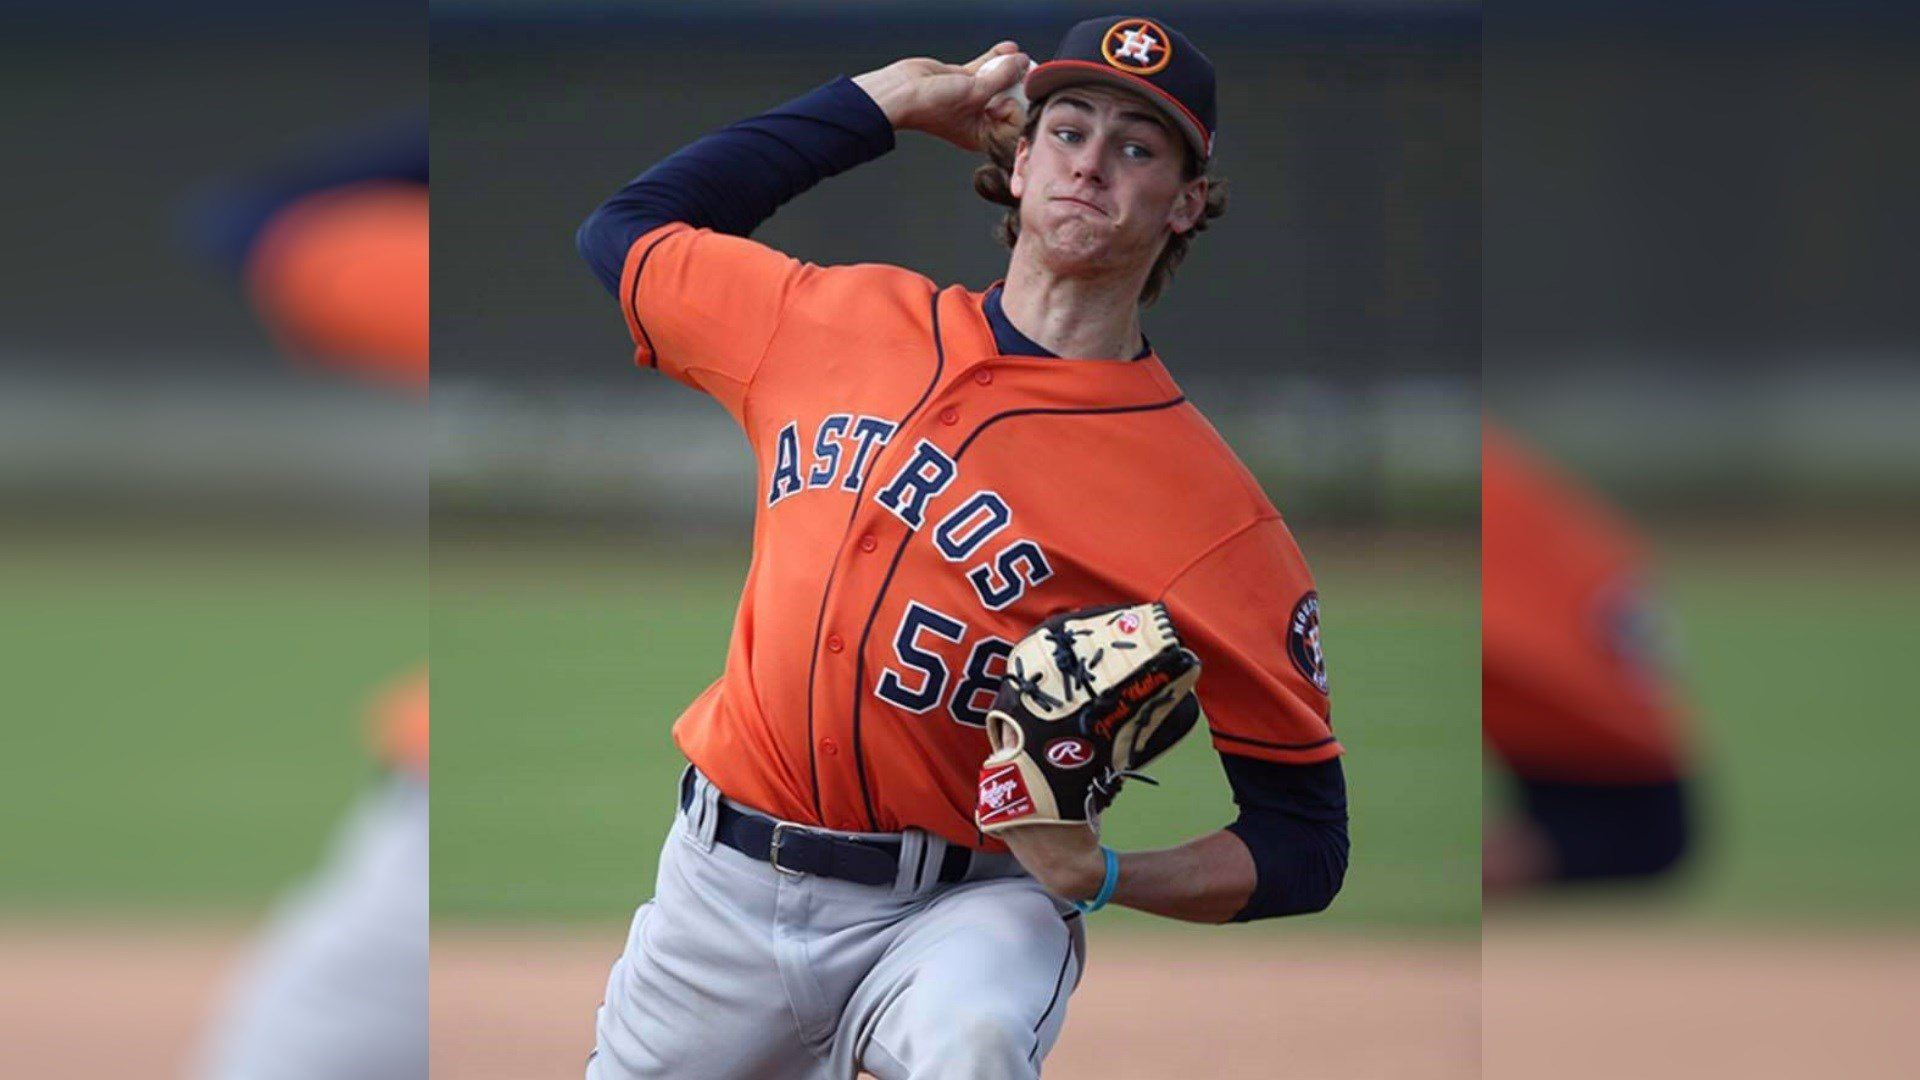 Astros' prospect Forrest Whitley suspended for 50 games